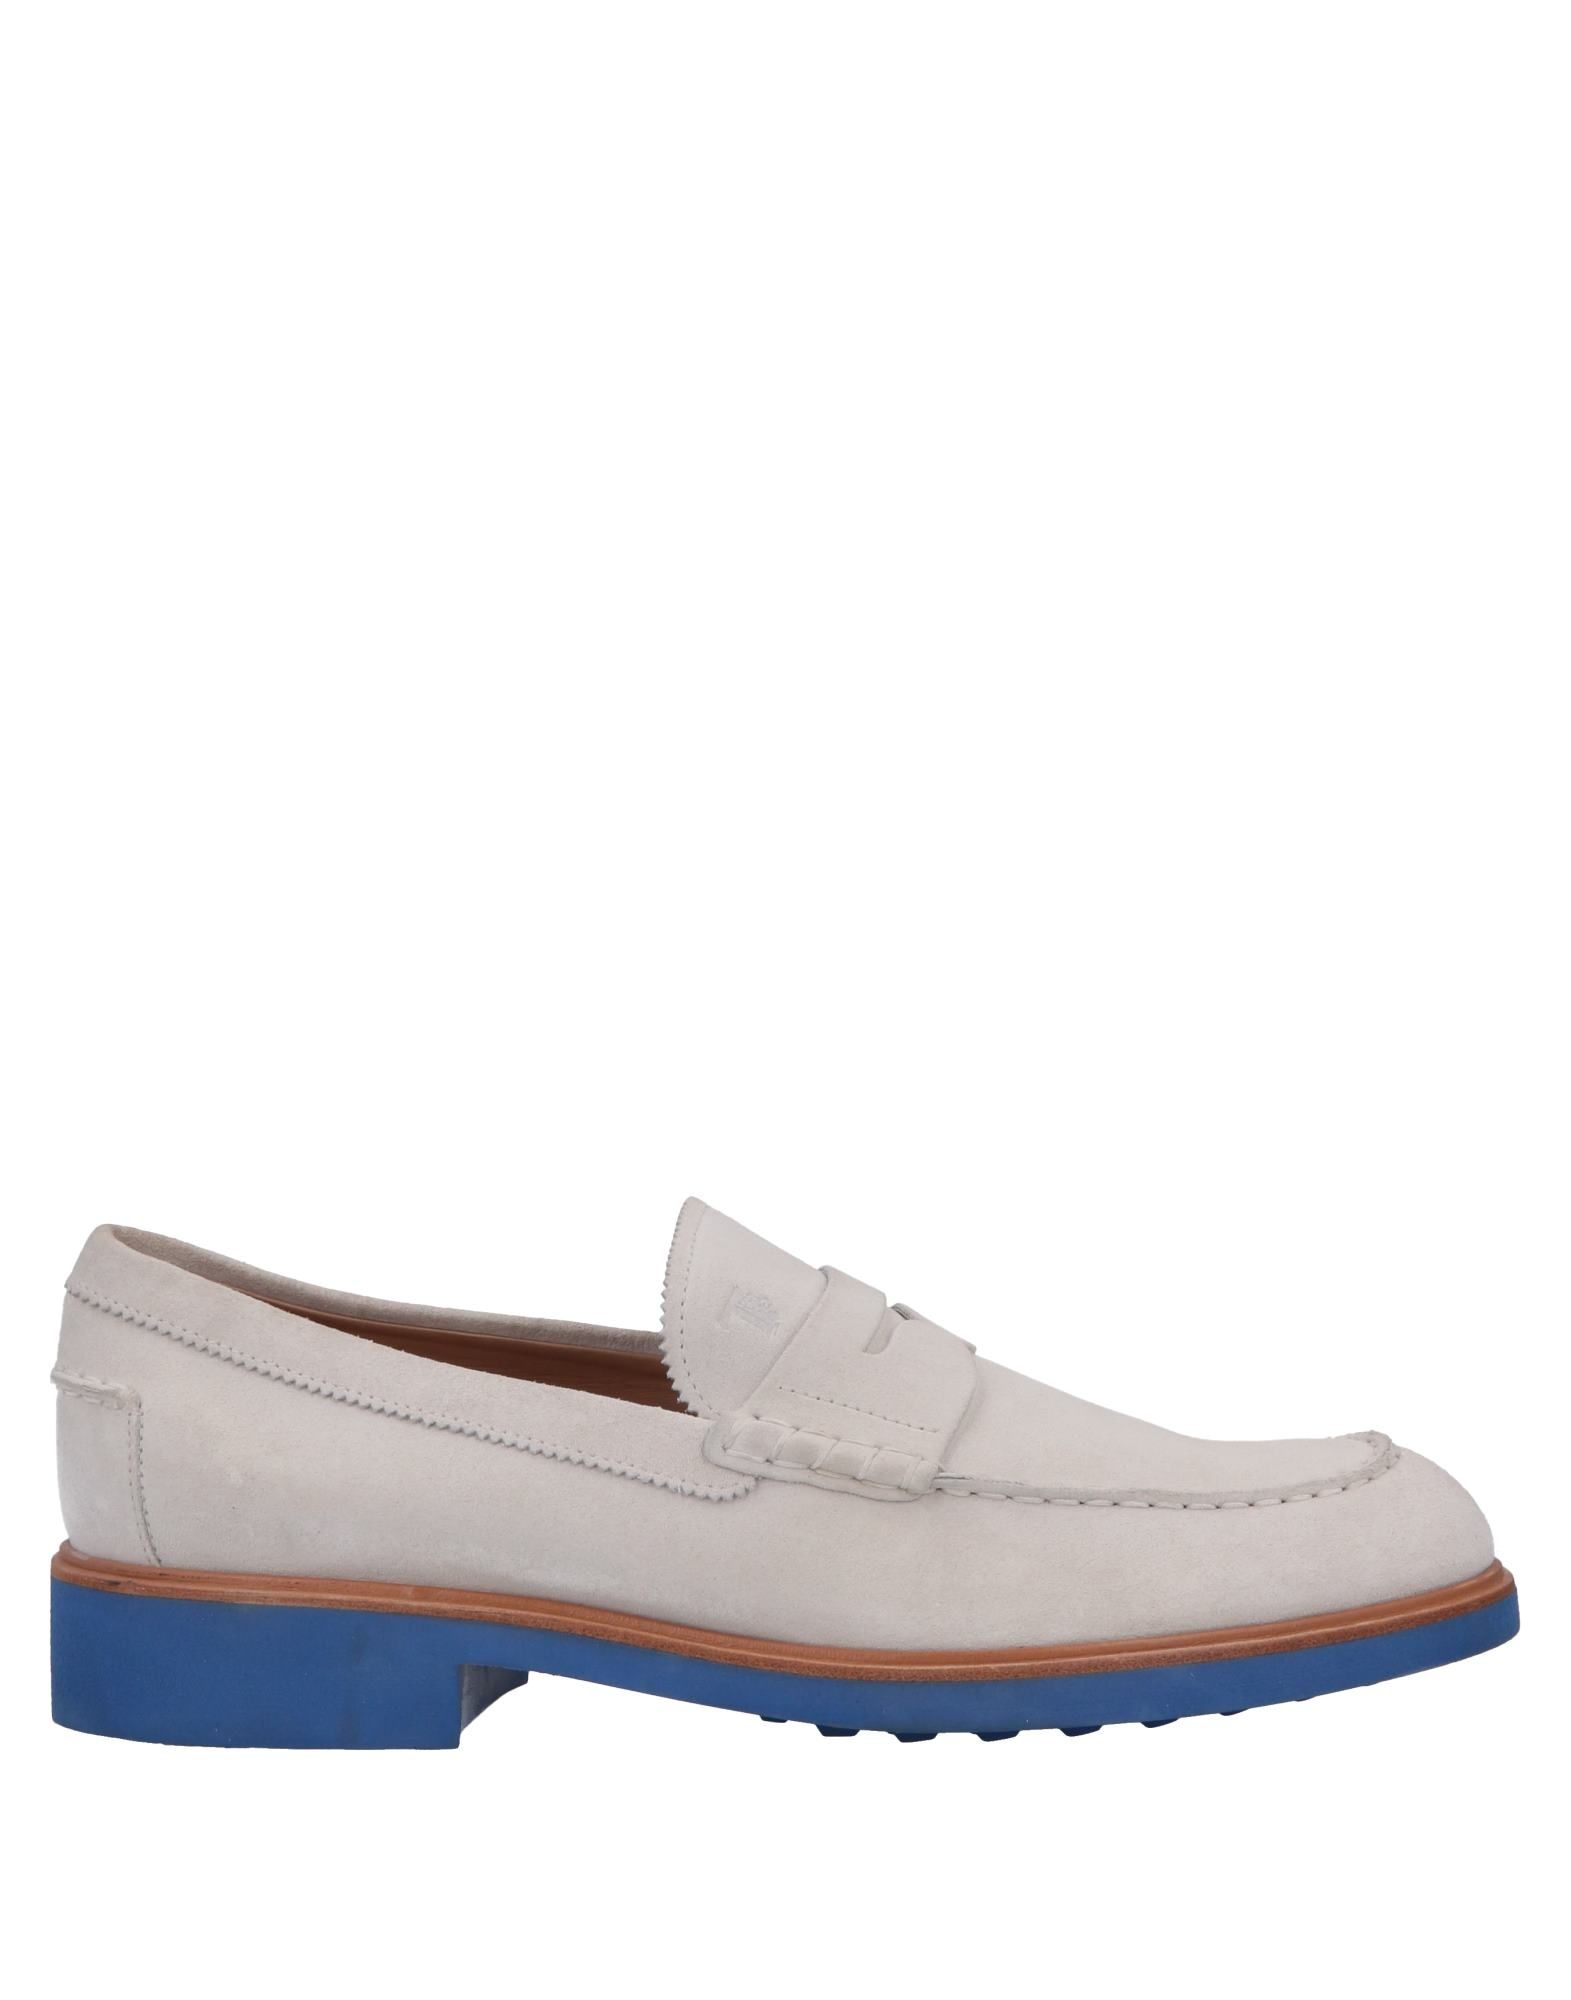 79c1035151c7 Tod s Loafers In Light Grey